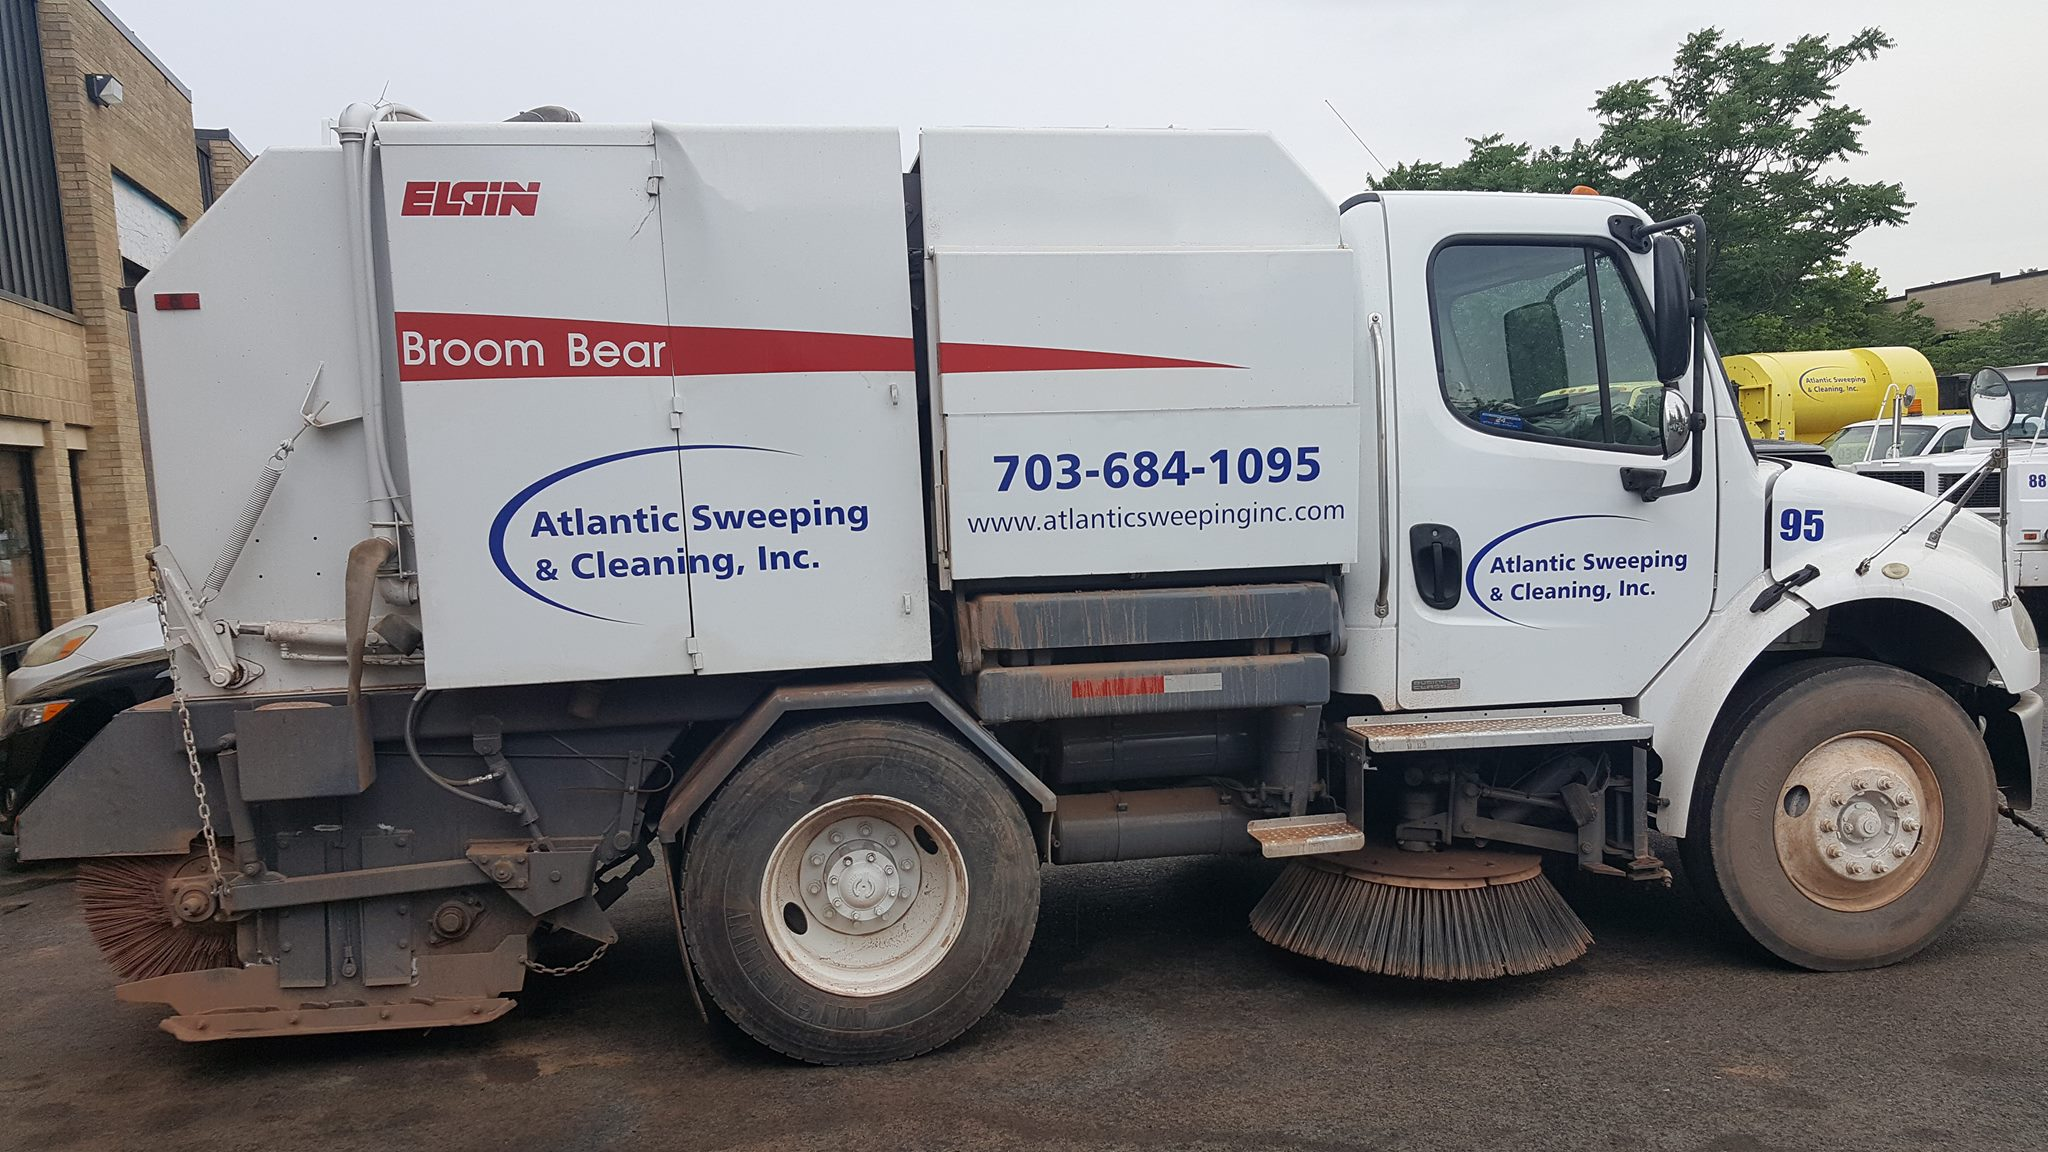 Atlantic Sweeping & Cleaning, Inc.